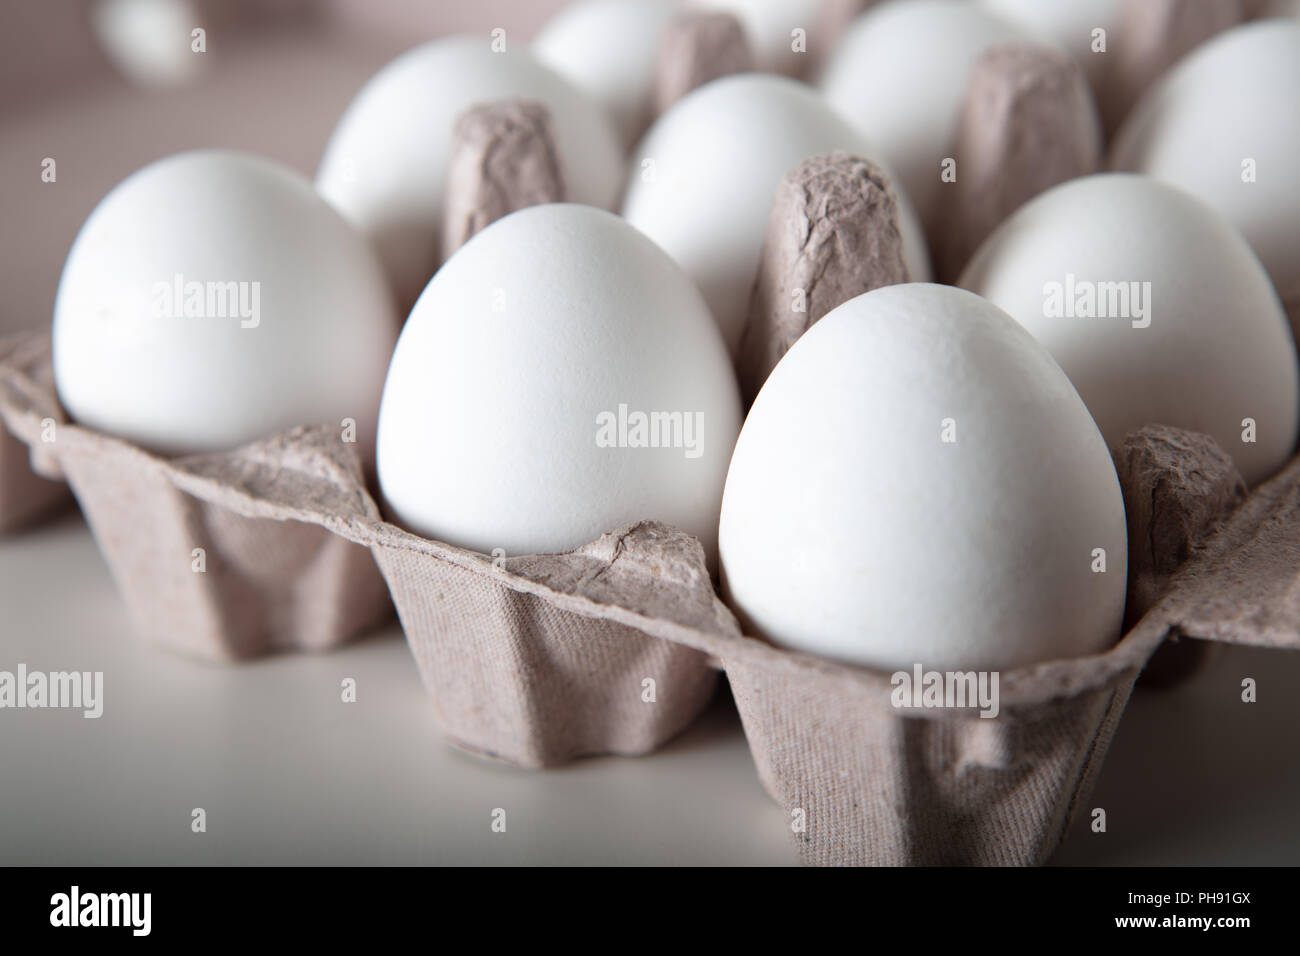 Close up eggs on paper tray selective focus, full frame high quality ...